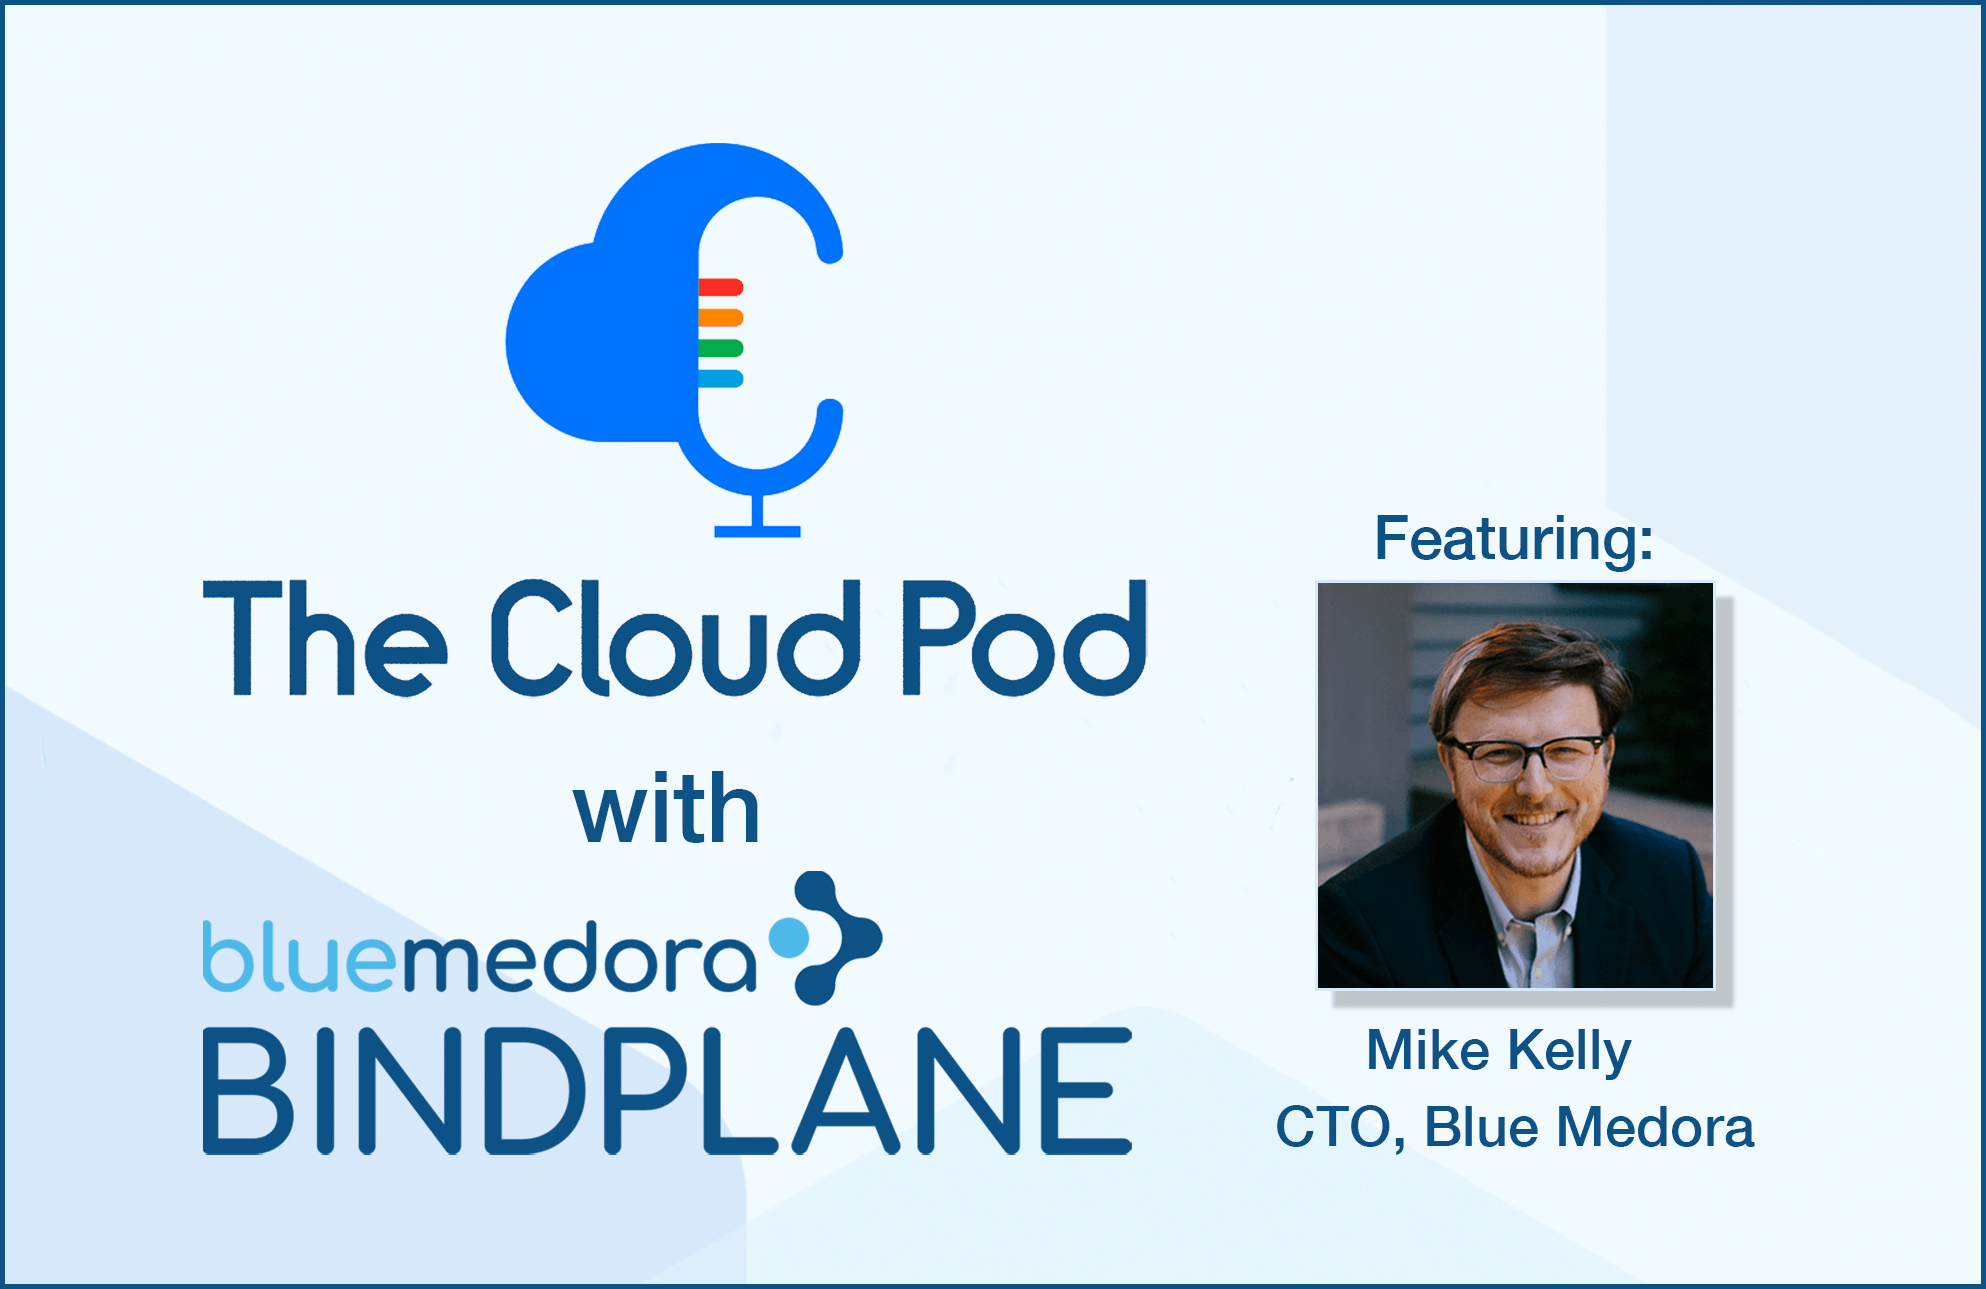 2020 ITOps Observability Discussion, The cloud pod, Blue medora, BindPlane, Mike Kelly